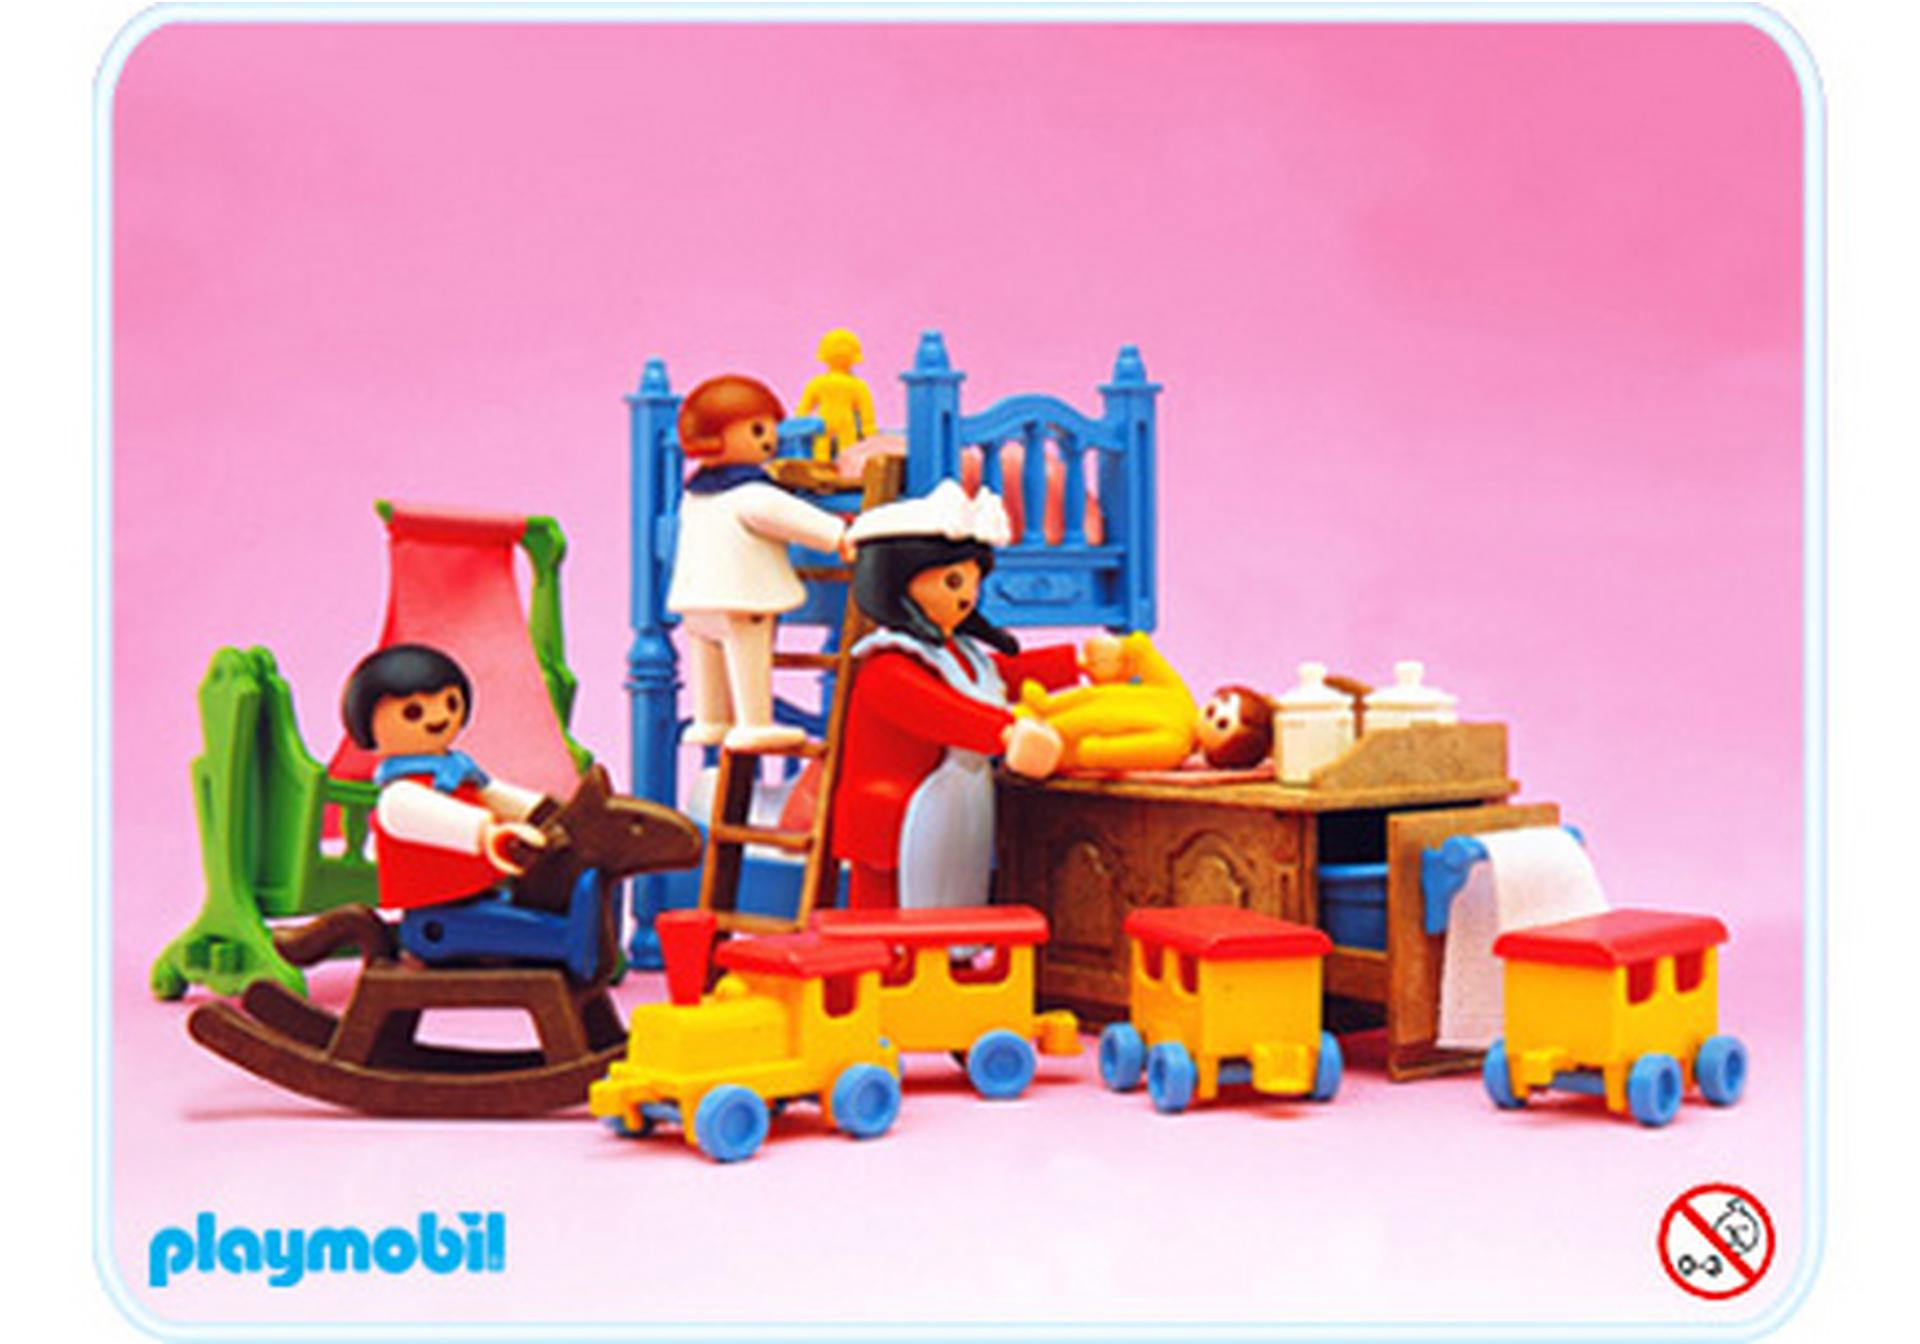 Chambre d enfants 5311 a playmobil france for Playmobil chambre enfant